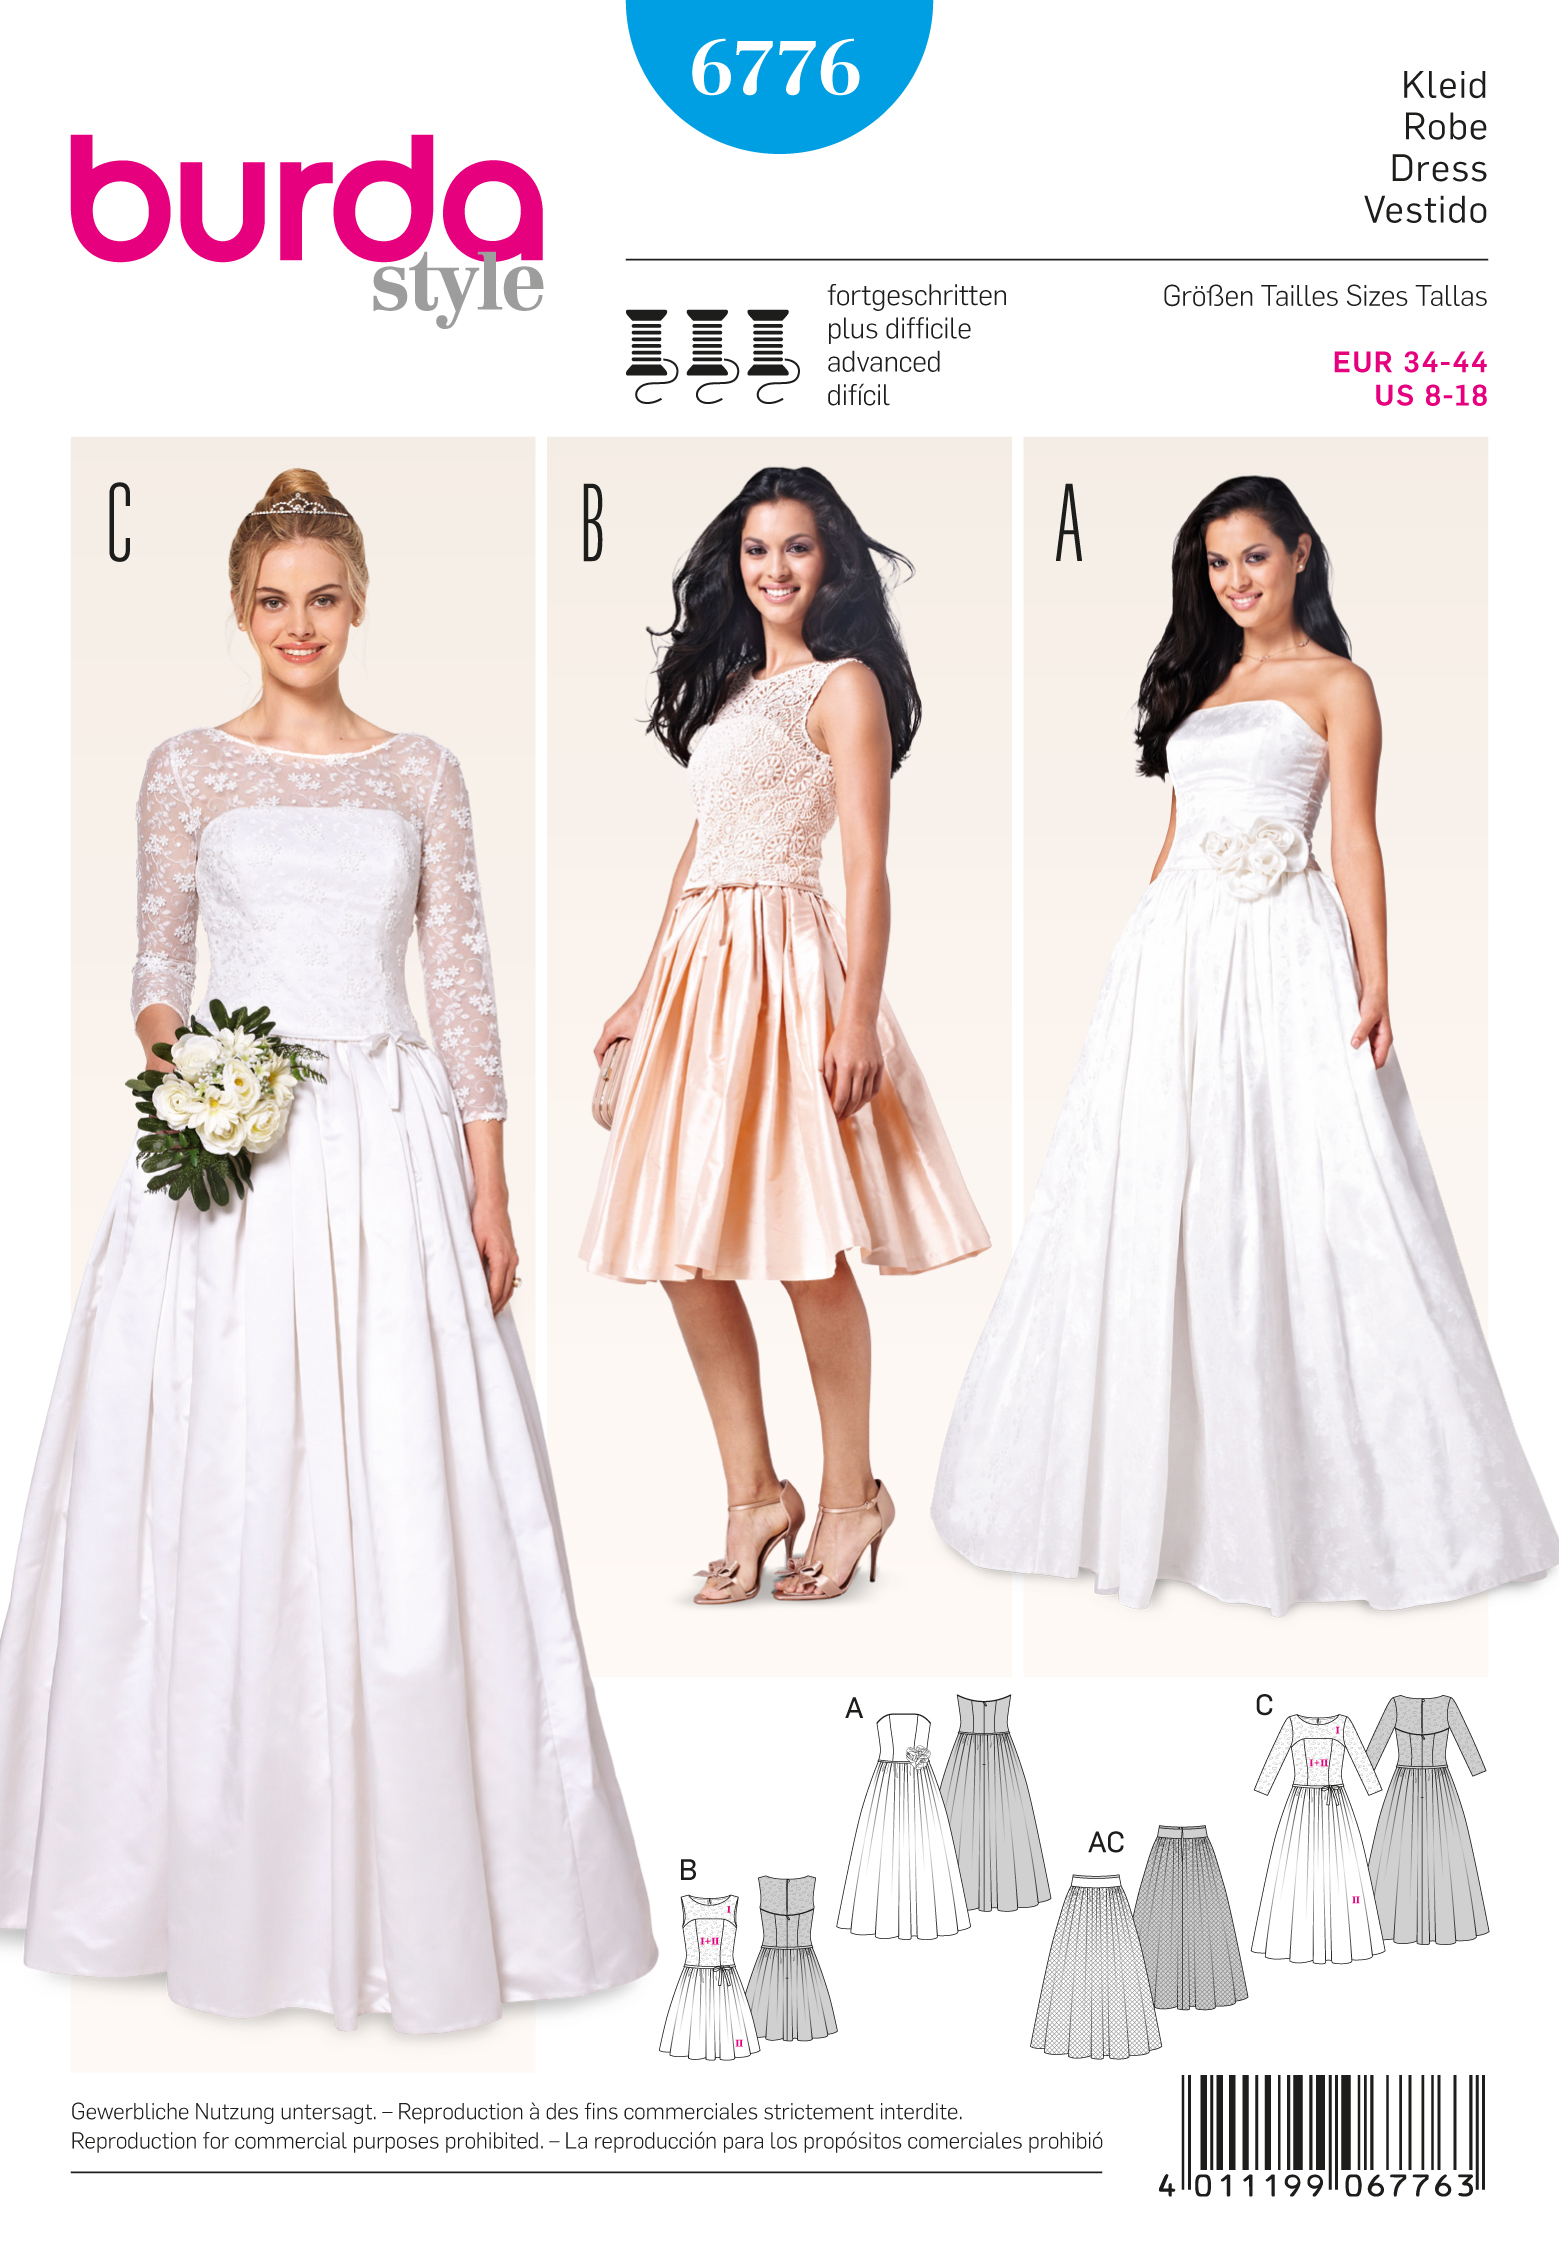 Burda 6776 burda style evening bridal wear for Lace wedding dress patterns to sew